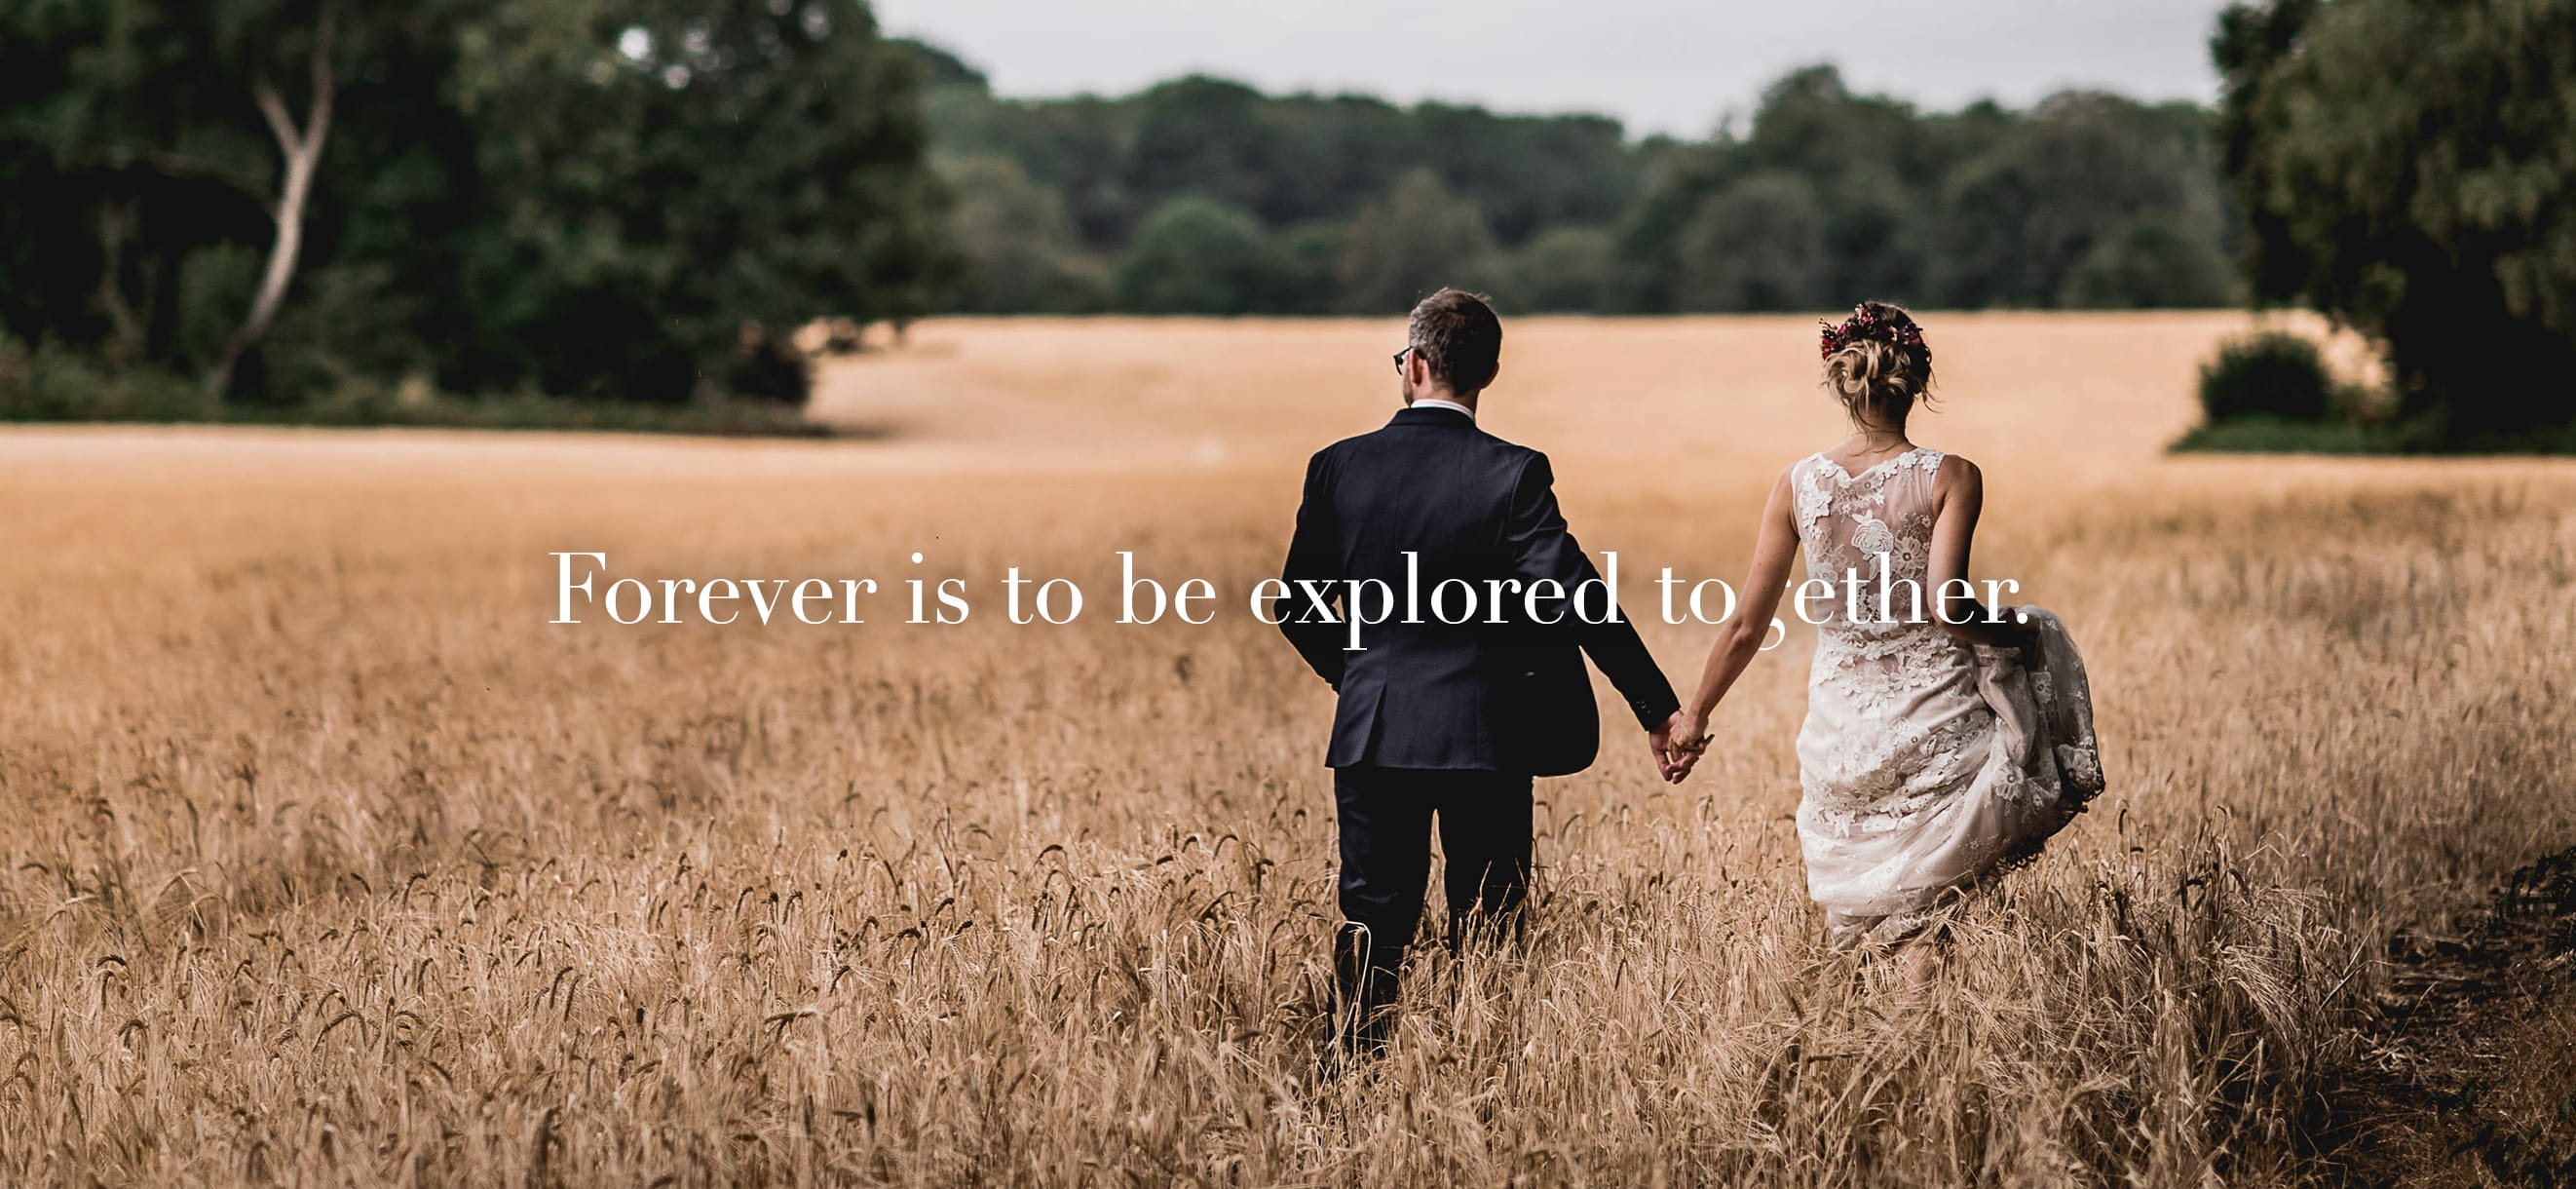 Forever is to be explored together.